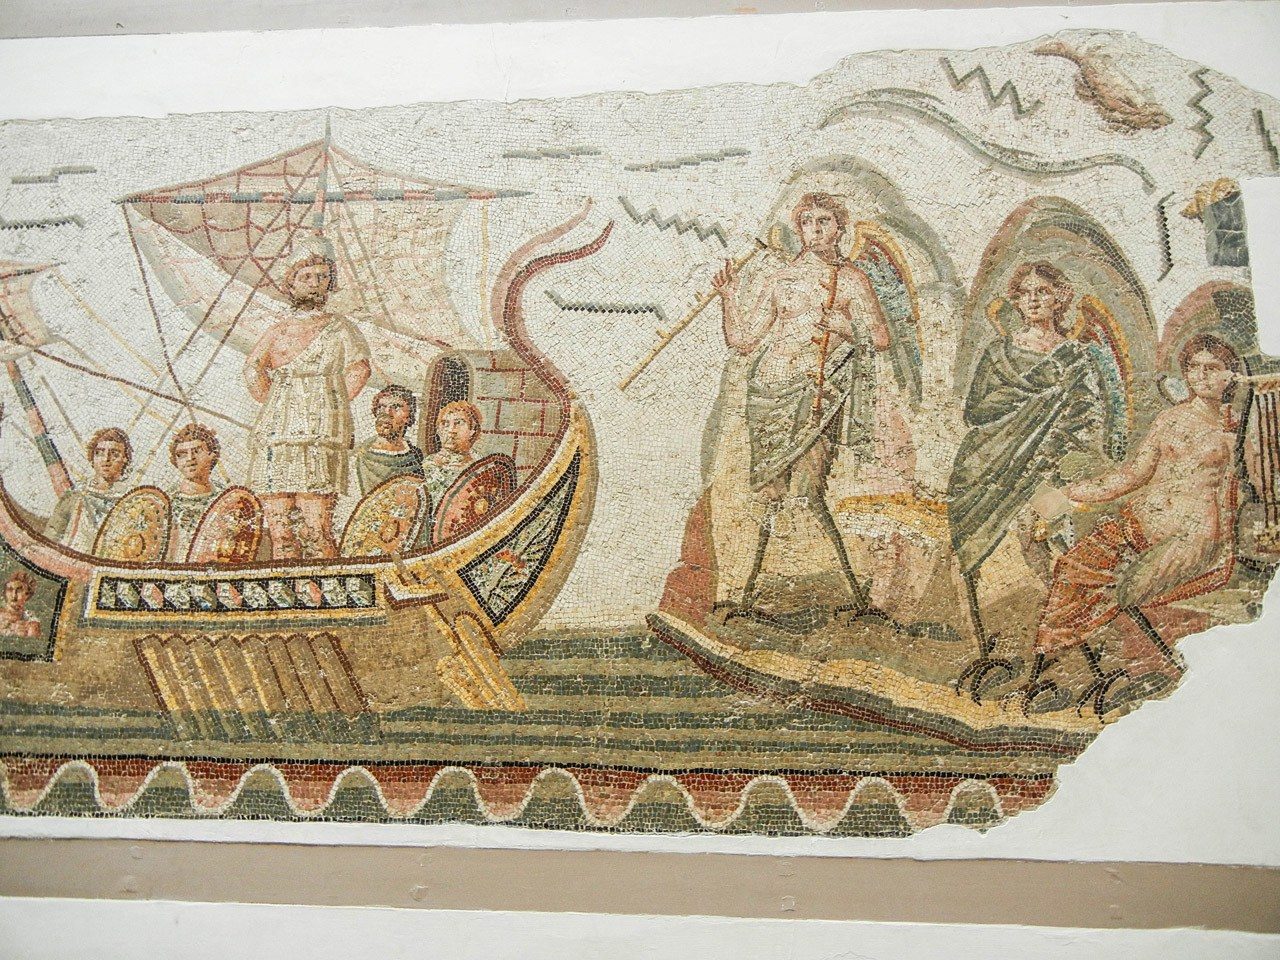 One of the Top things to do in Tunis is the Bardo Museum to see a plethora of stunning mosaics such as this one of the boat and sailors.